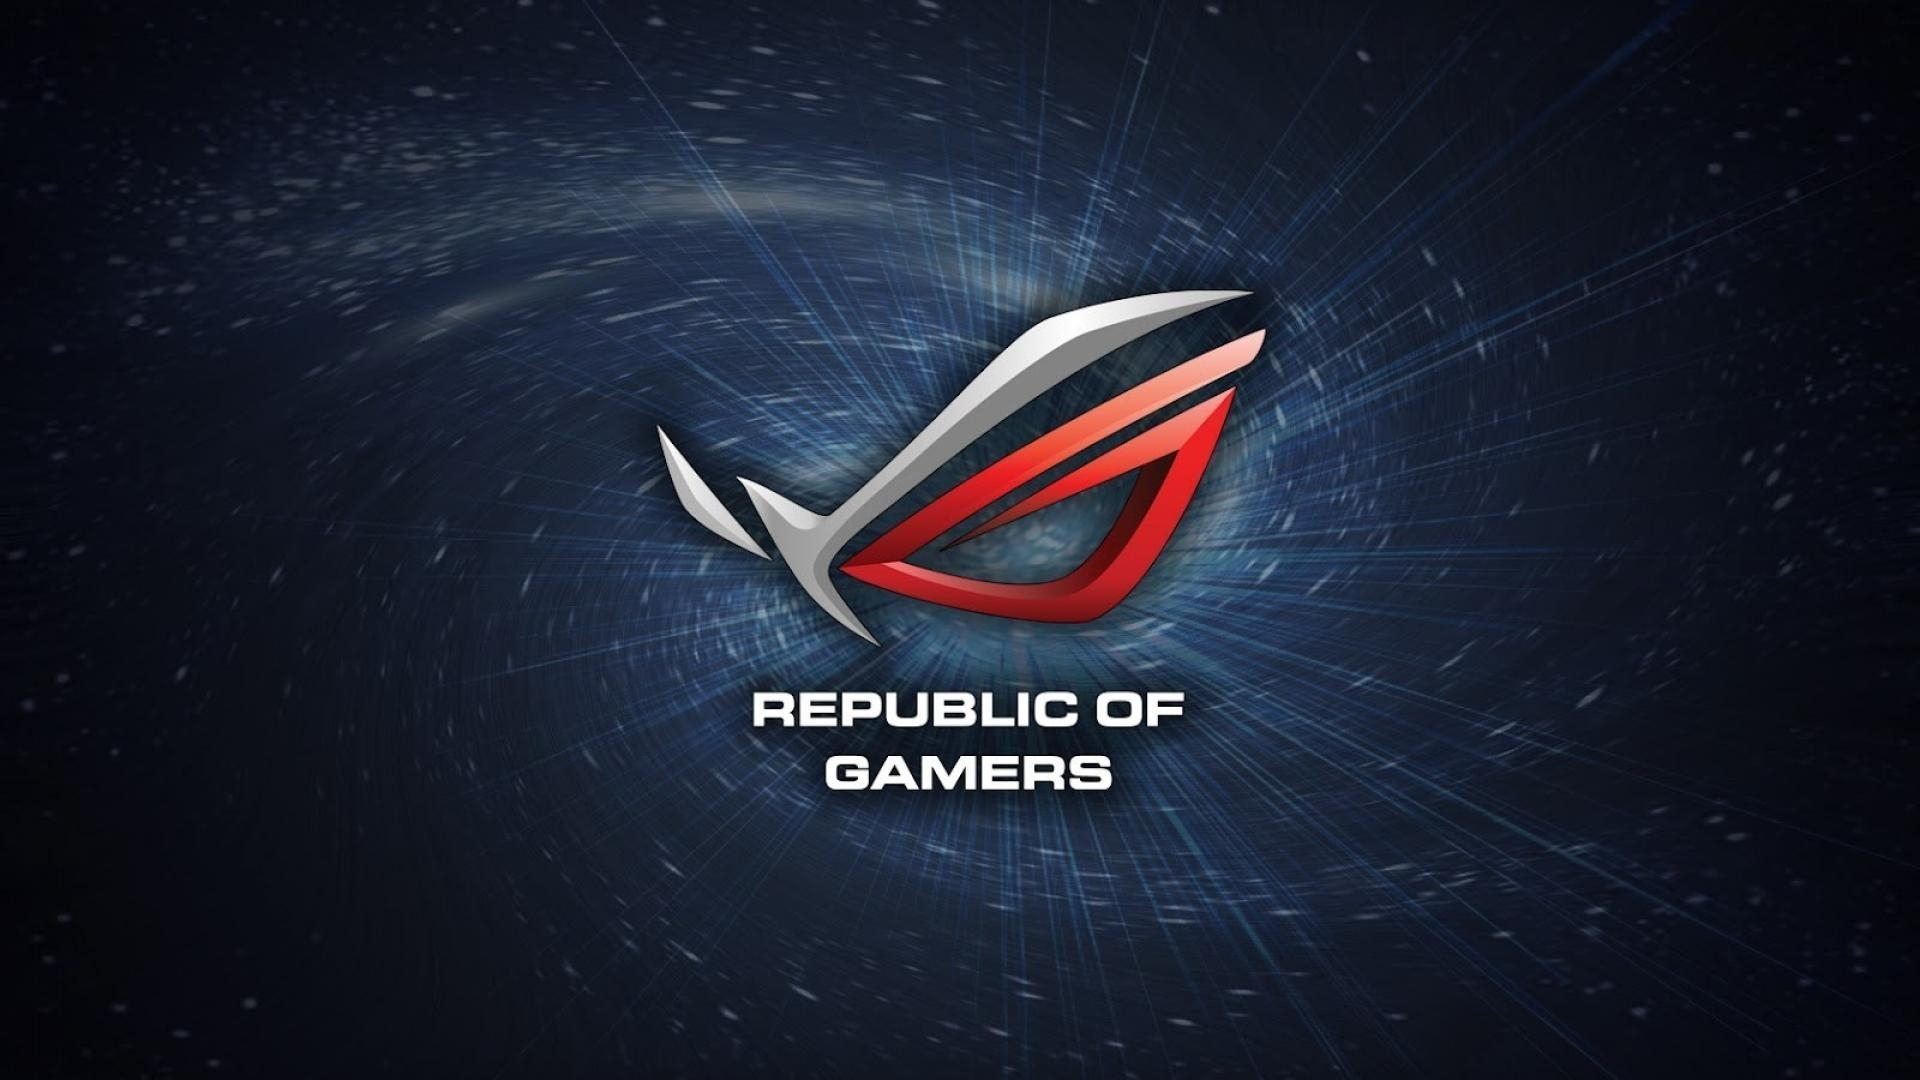 asus rog republic of gamers wallpaper | (65436)